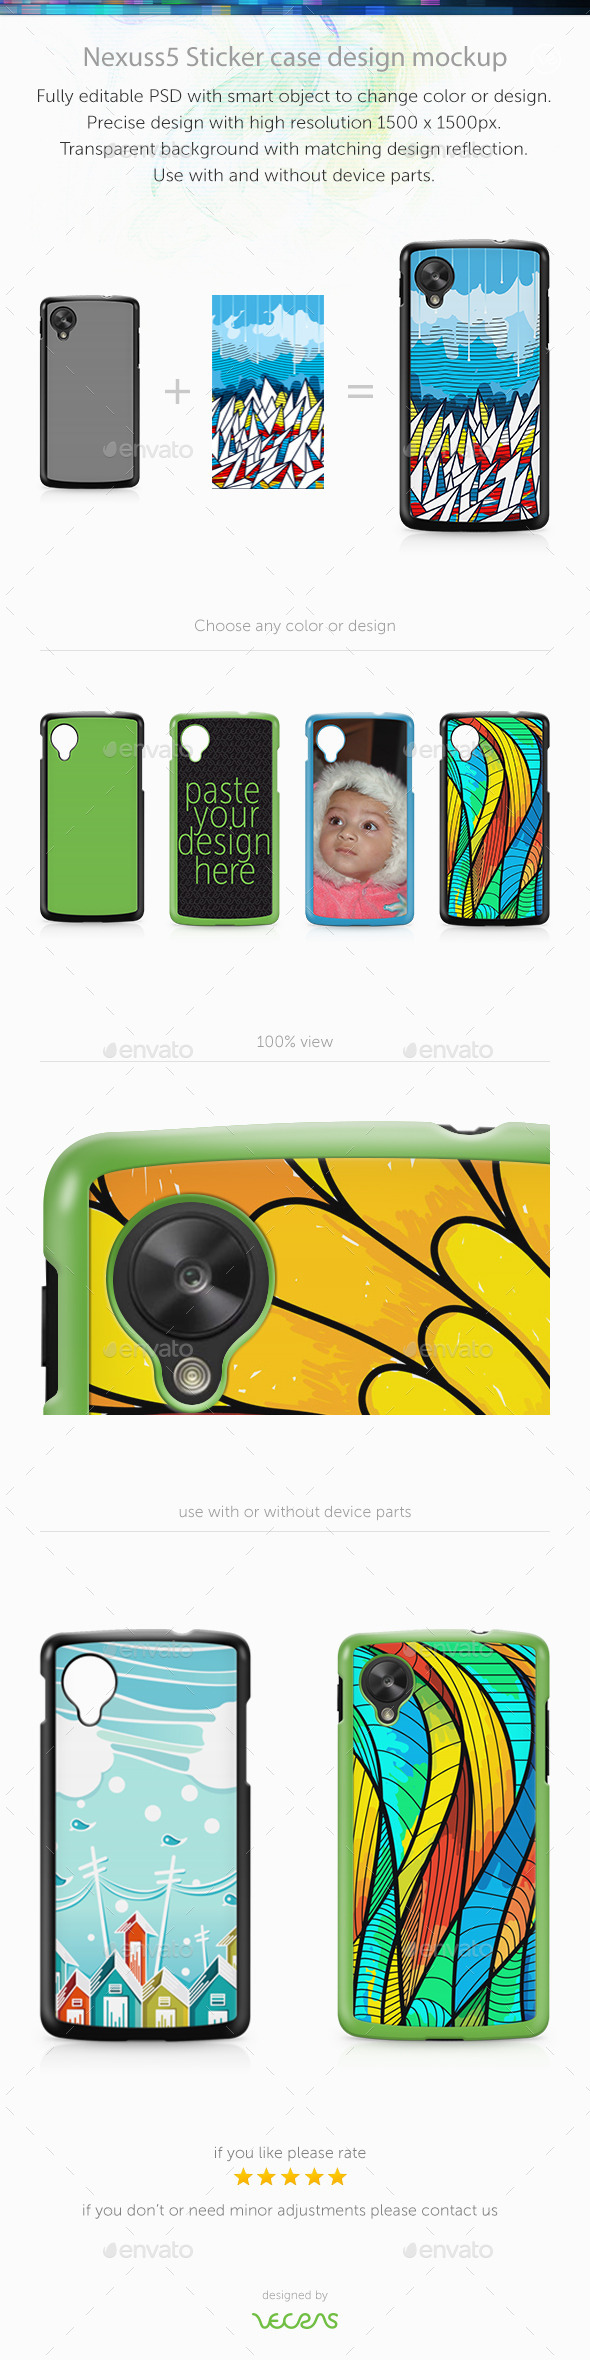 GraphicRiver Nexuss 5 Sticker Case Design Mockup 9742993